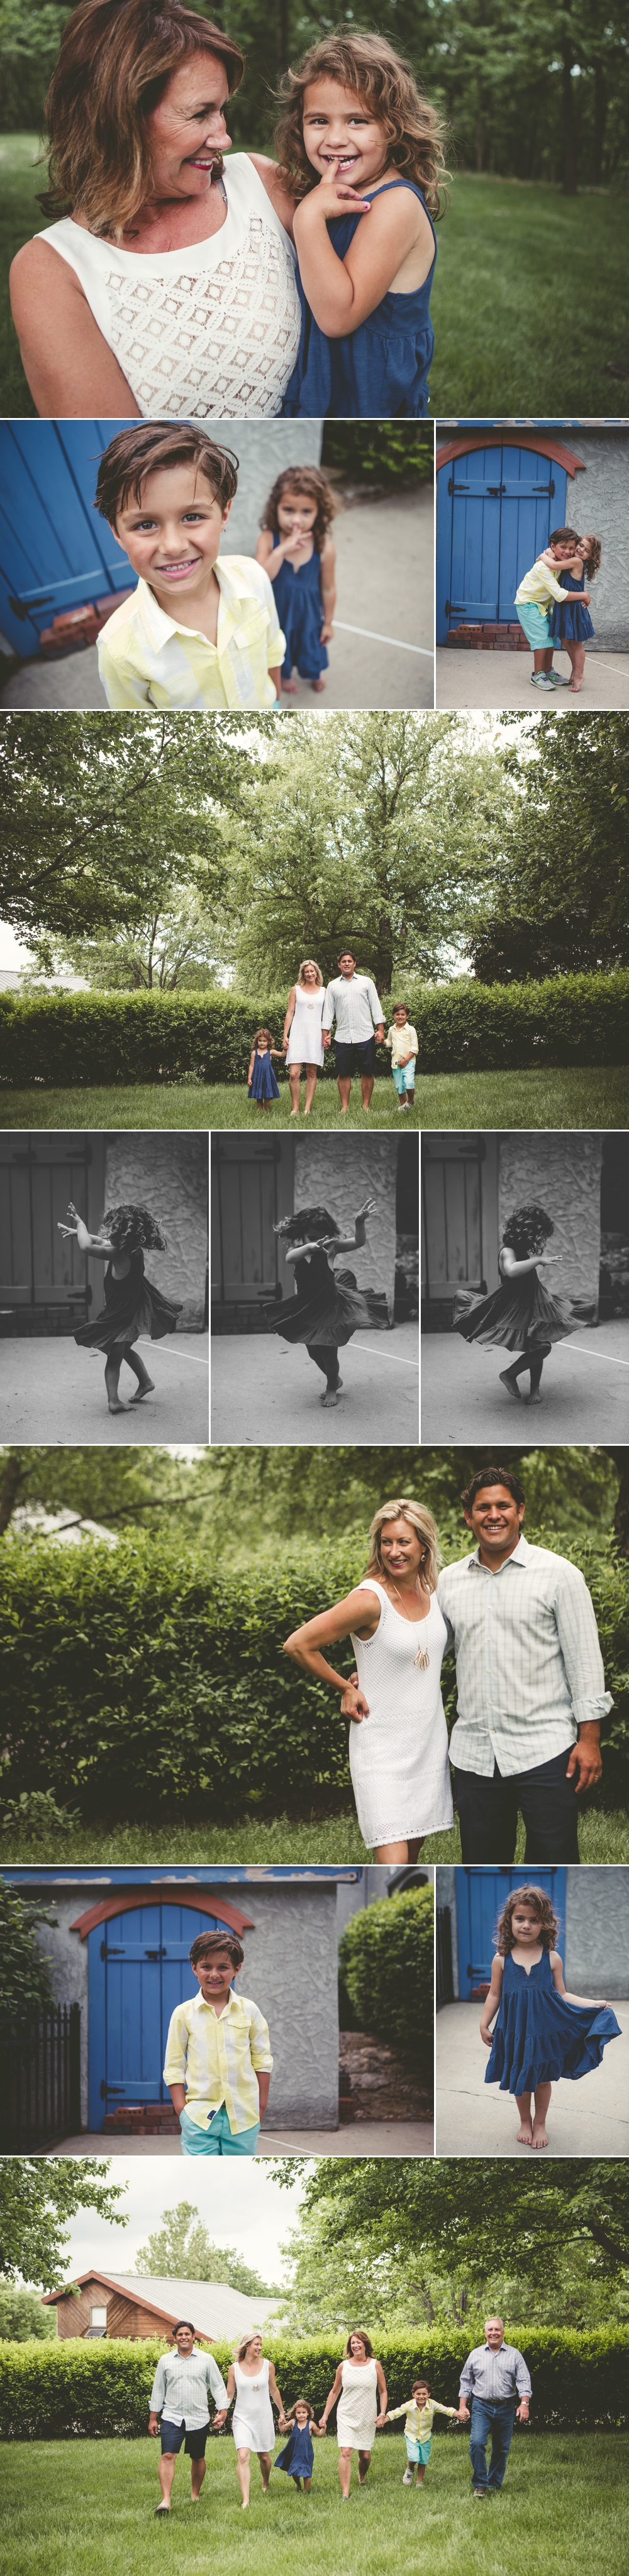 jason_domingues_photography_best_kansas_city_potrait_photographer_family_pictures